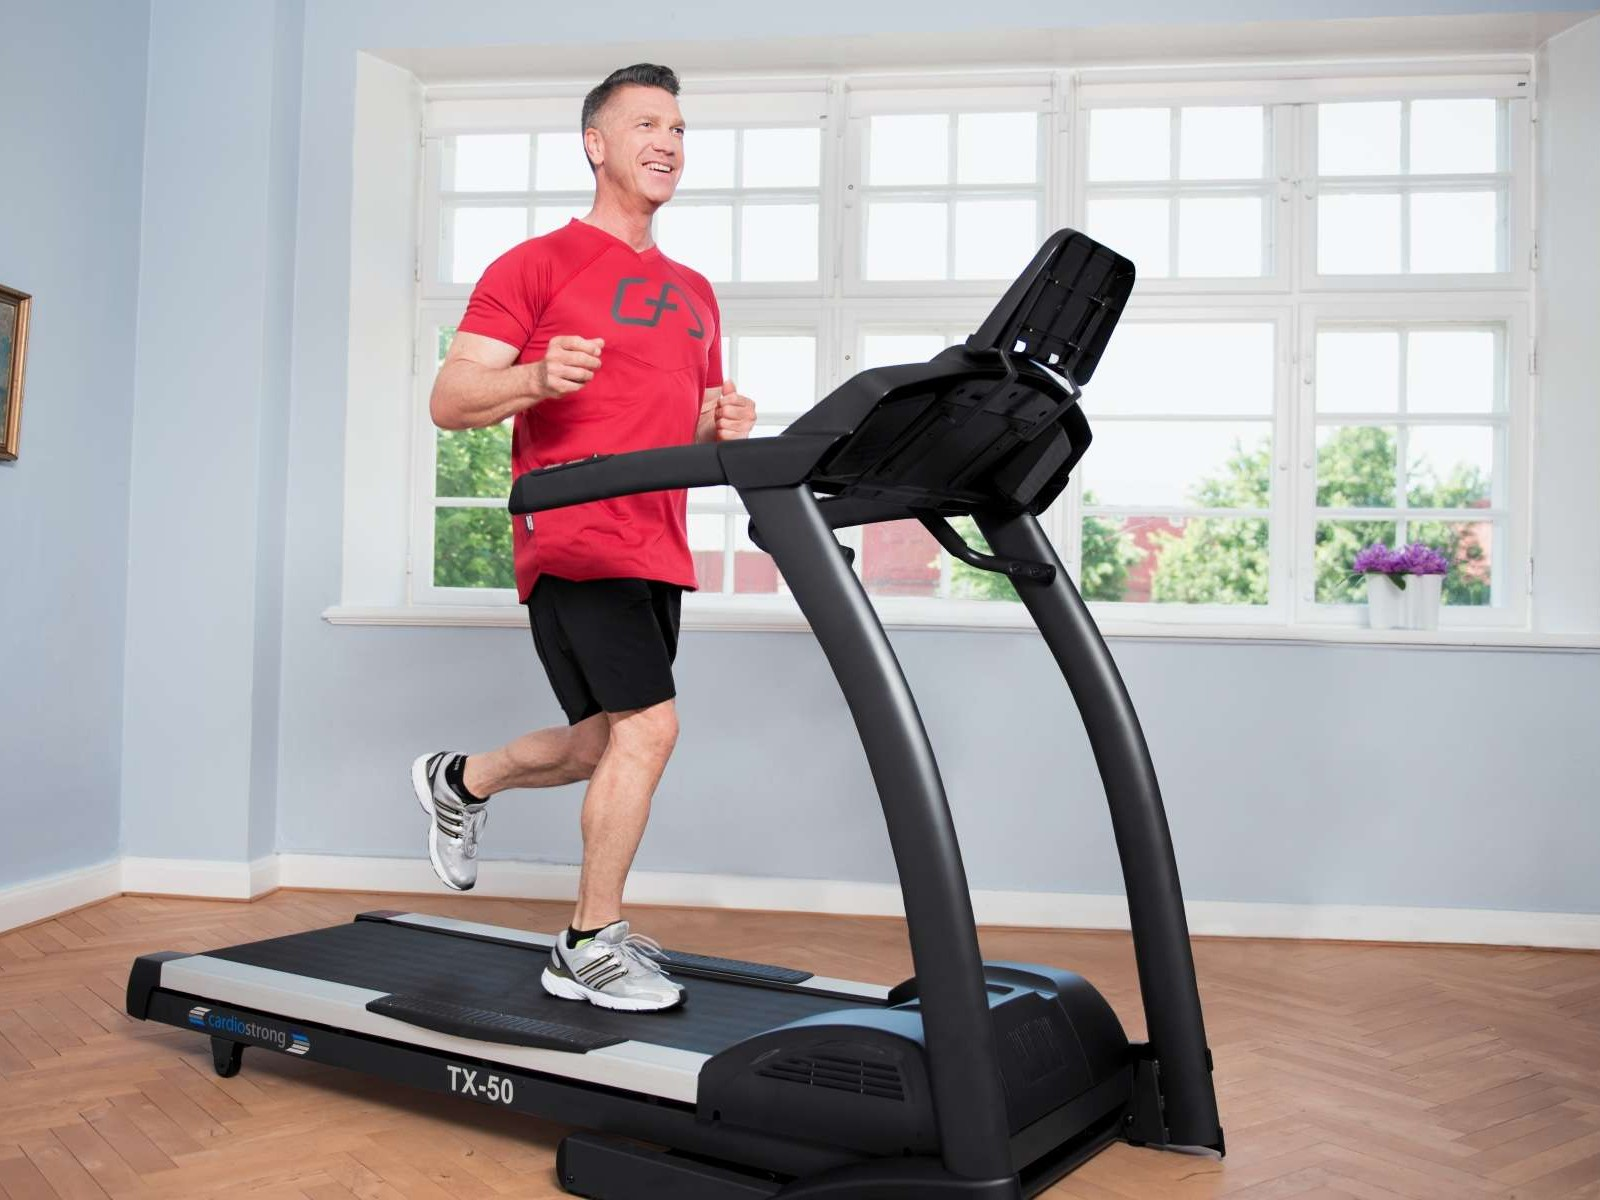 The Main Benefits Of Using Treadmill